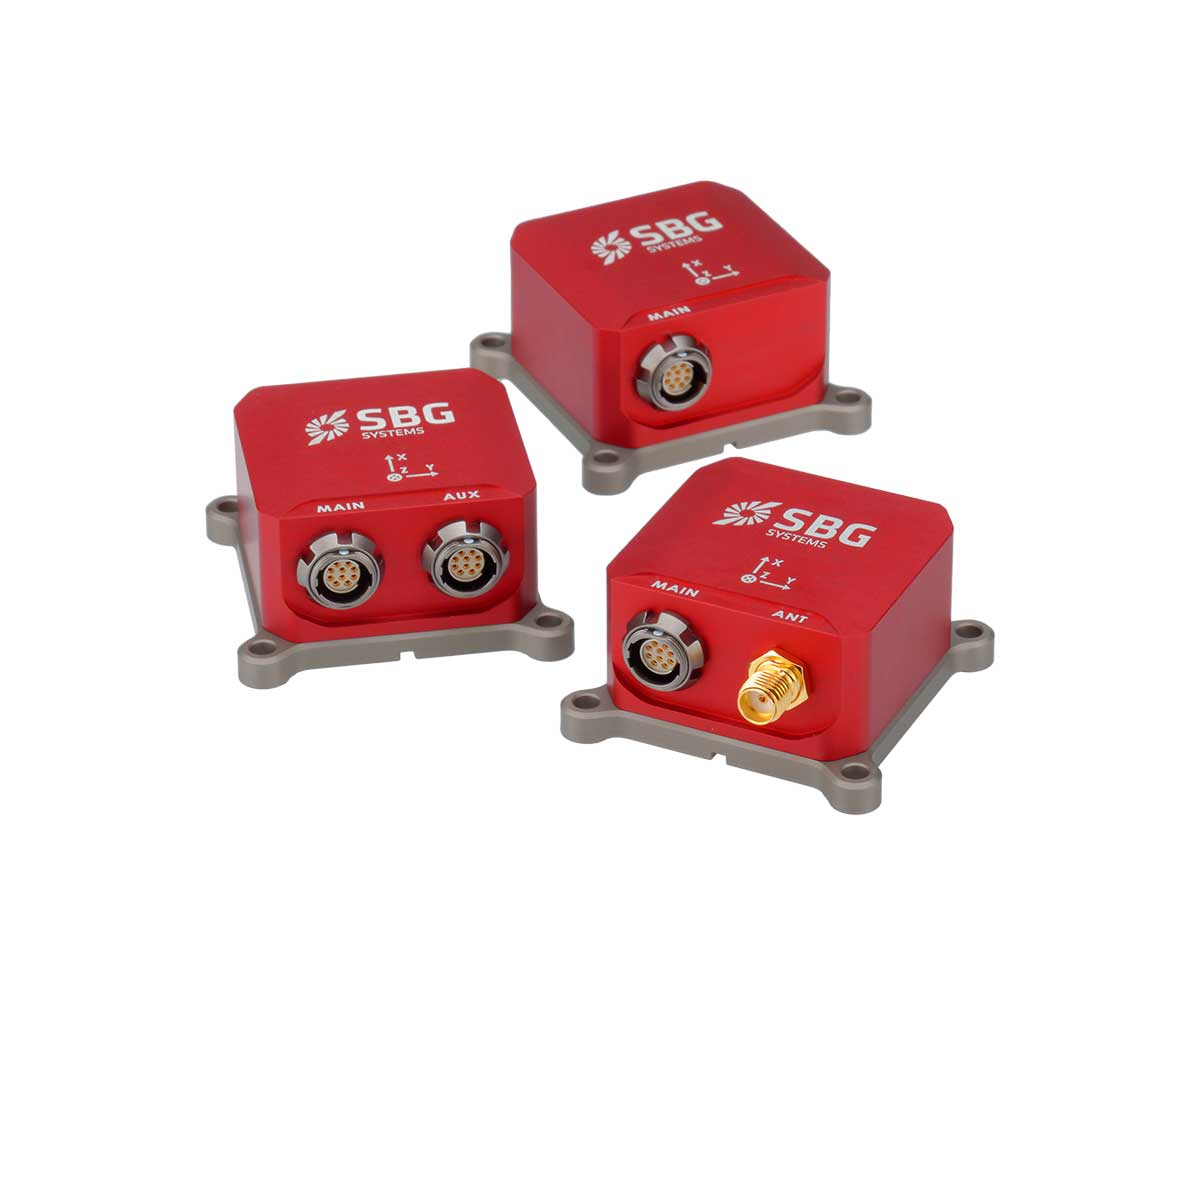 GPS/GNSS Receivers